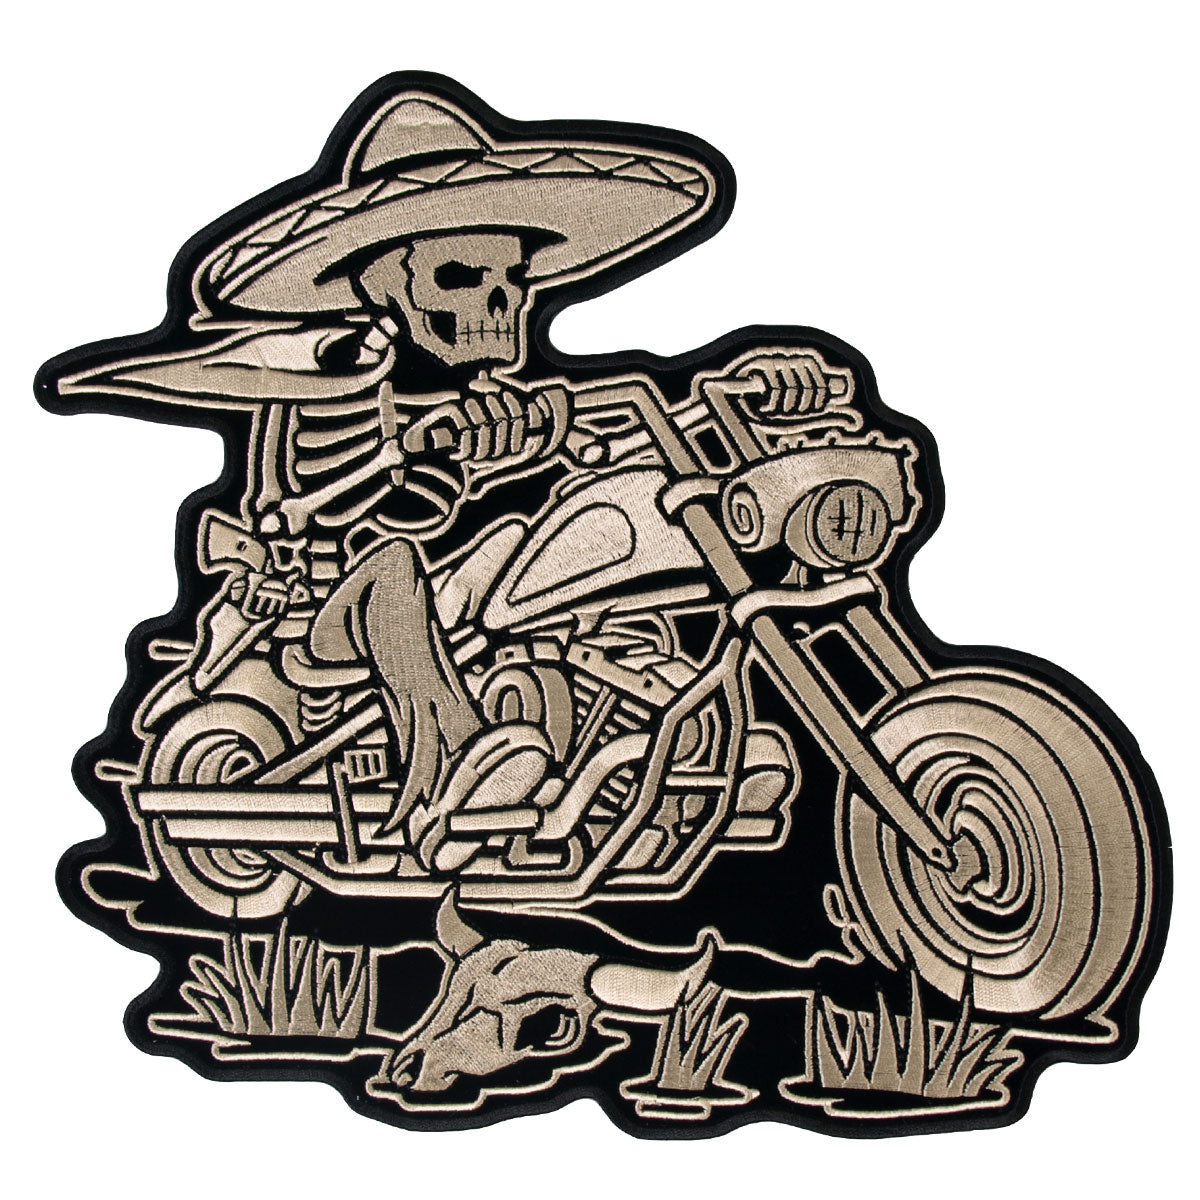 "Hot Leathers Sombrero Skeleton Rider 11"" x 10"" Patch"